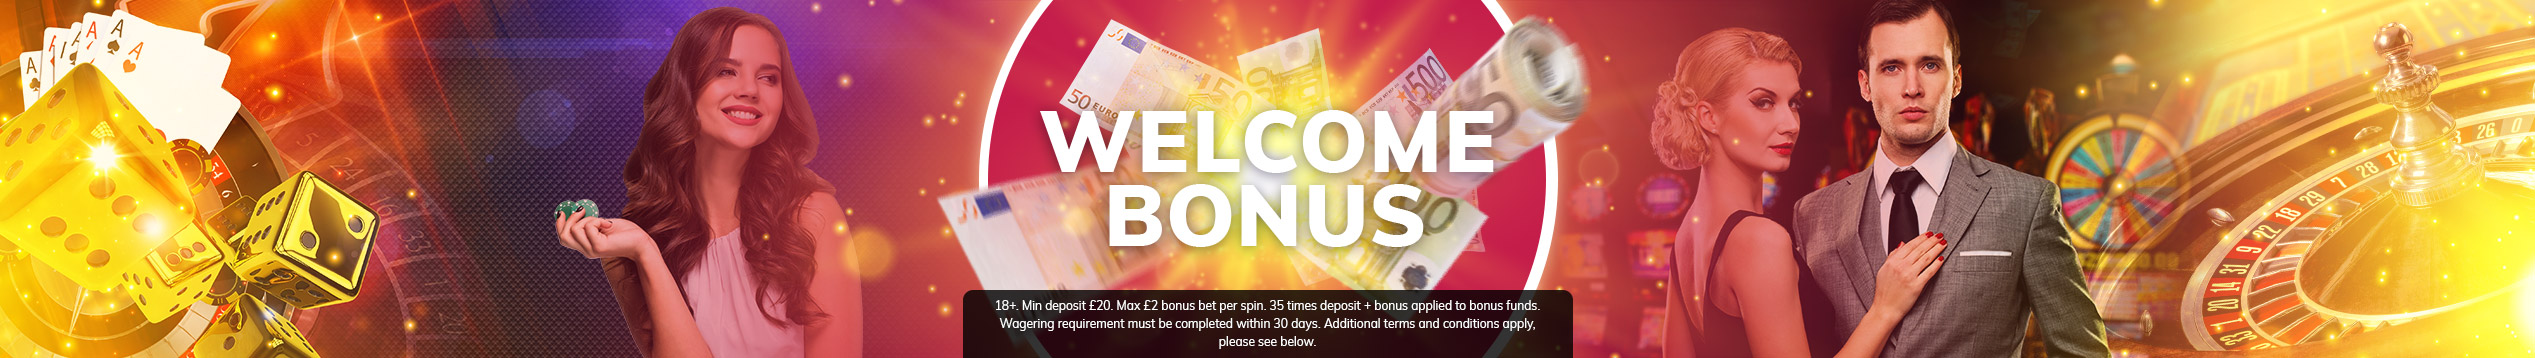 Get up to £100 in Casino Bonus on your first deposit!